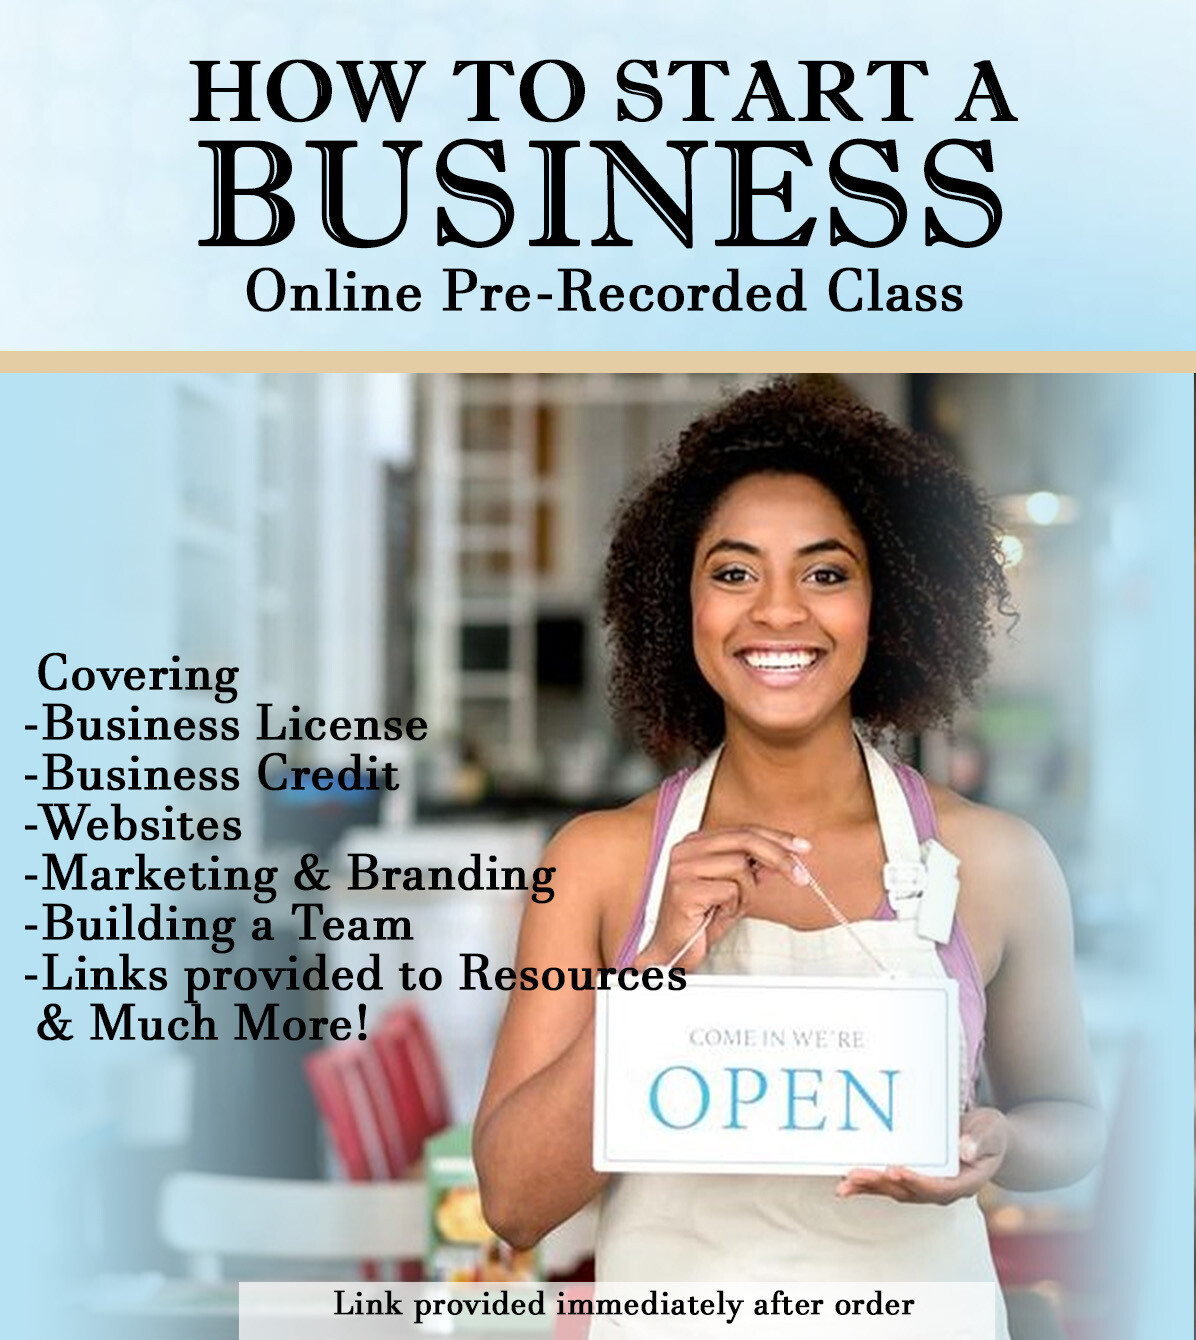 How To Start A Business Online Class